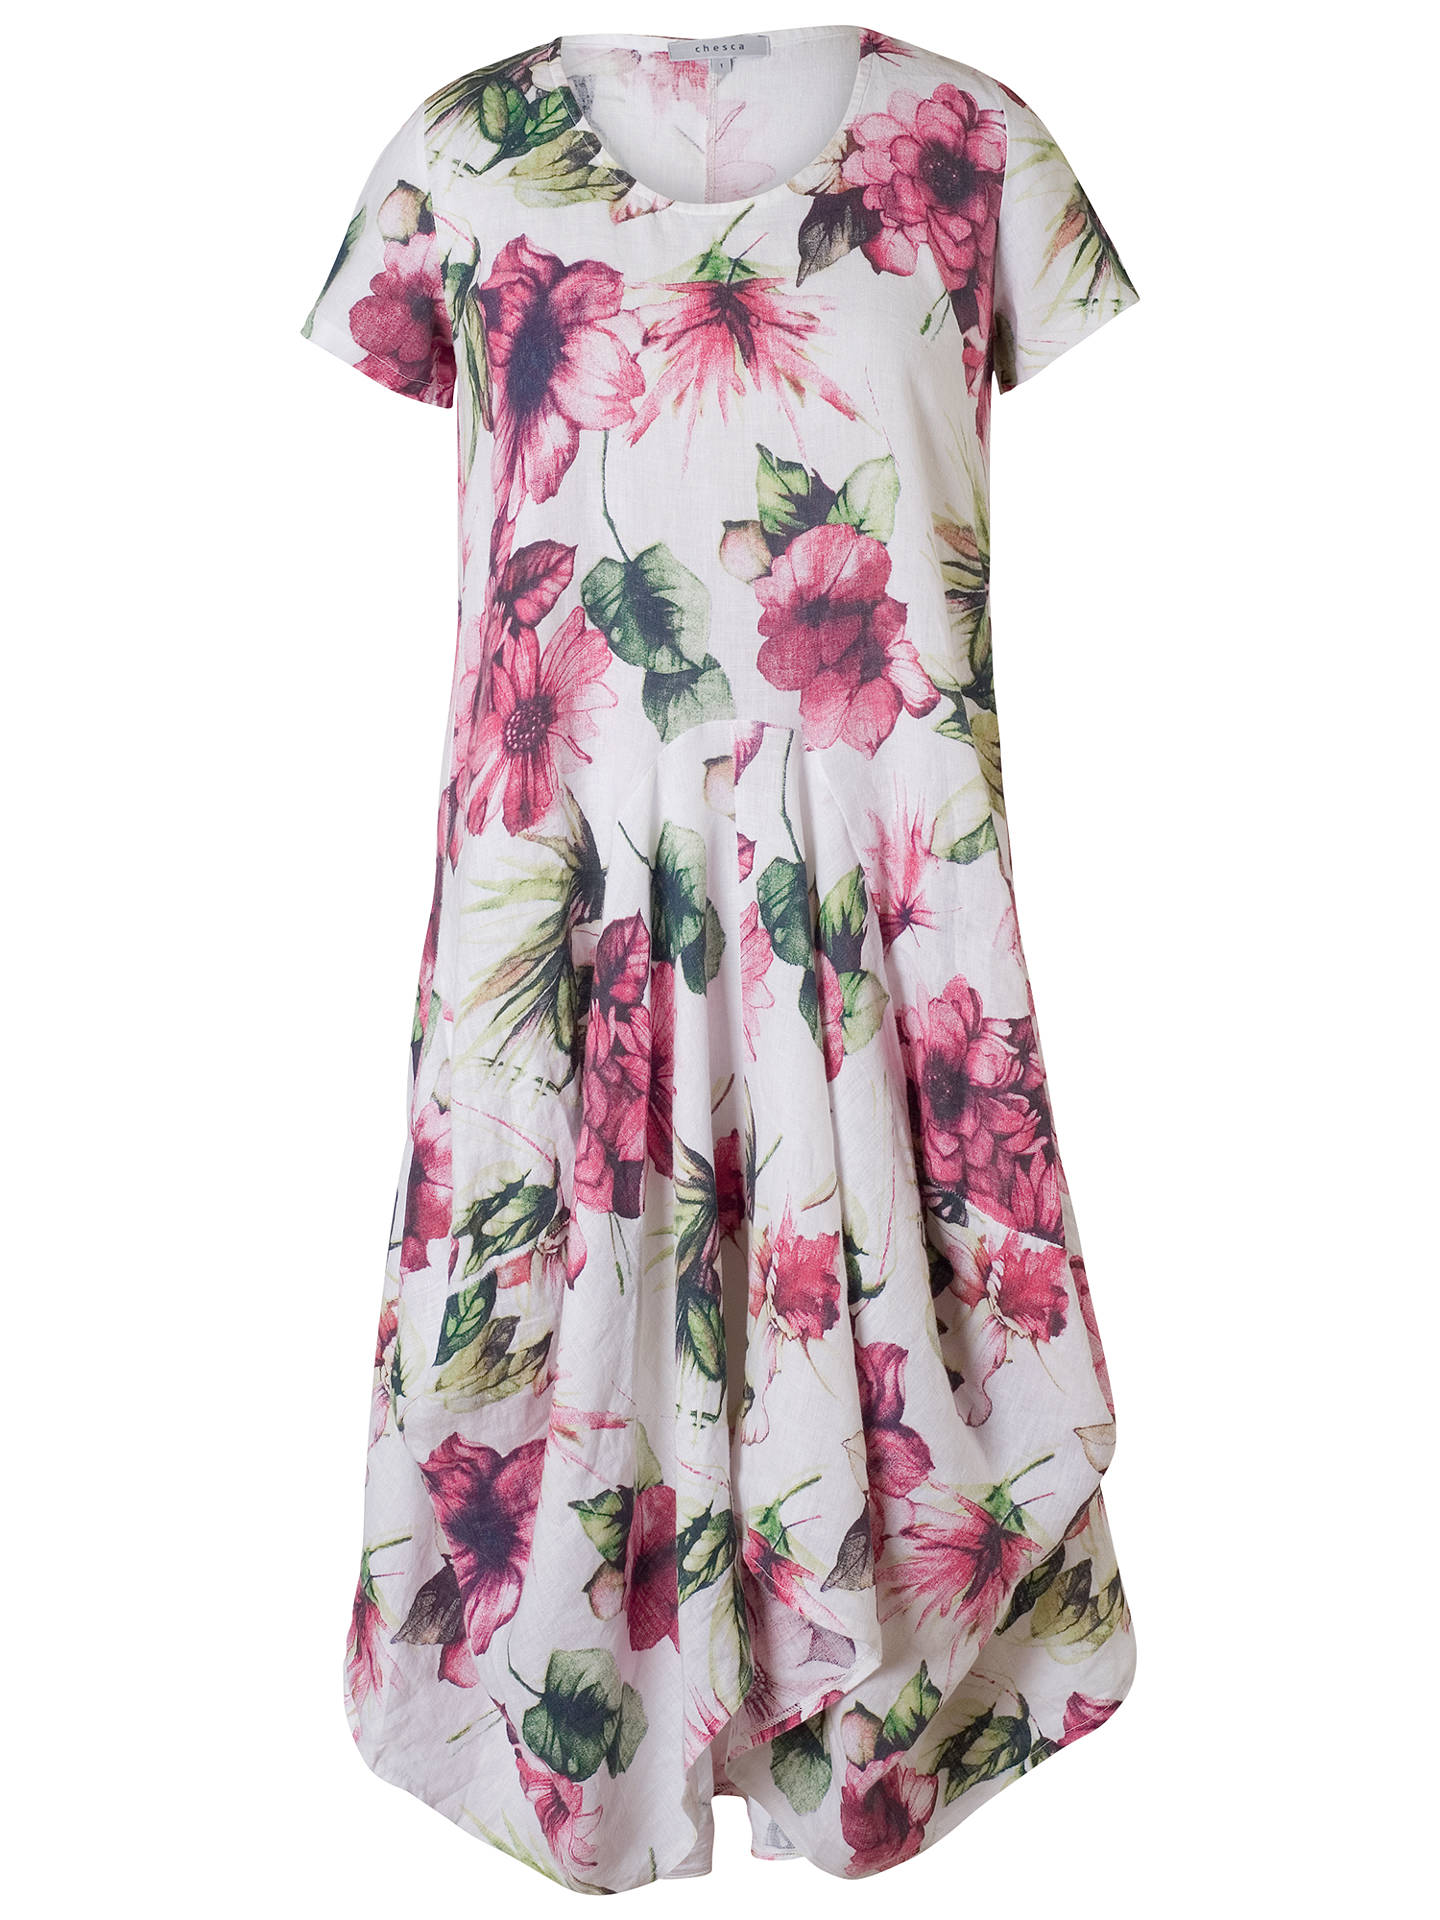 BuyChesca Print Linen Dress, White/Fuchsia, 12-14 Online at johnlewis.com